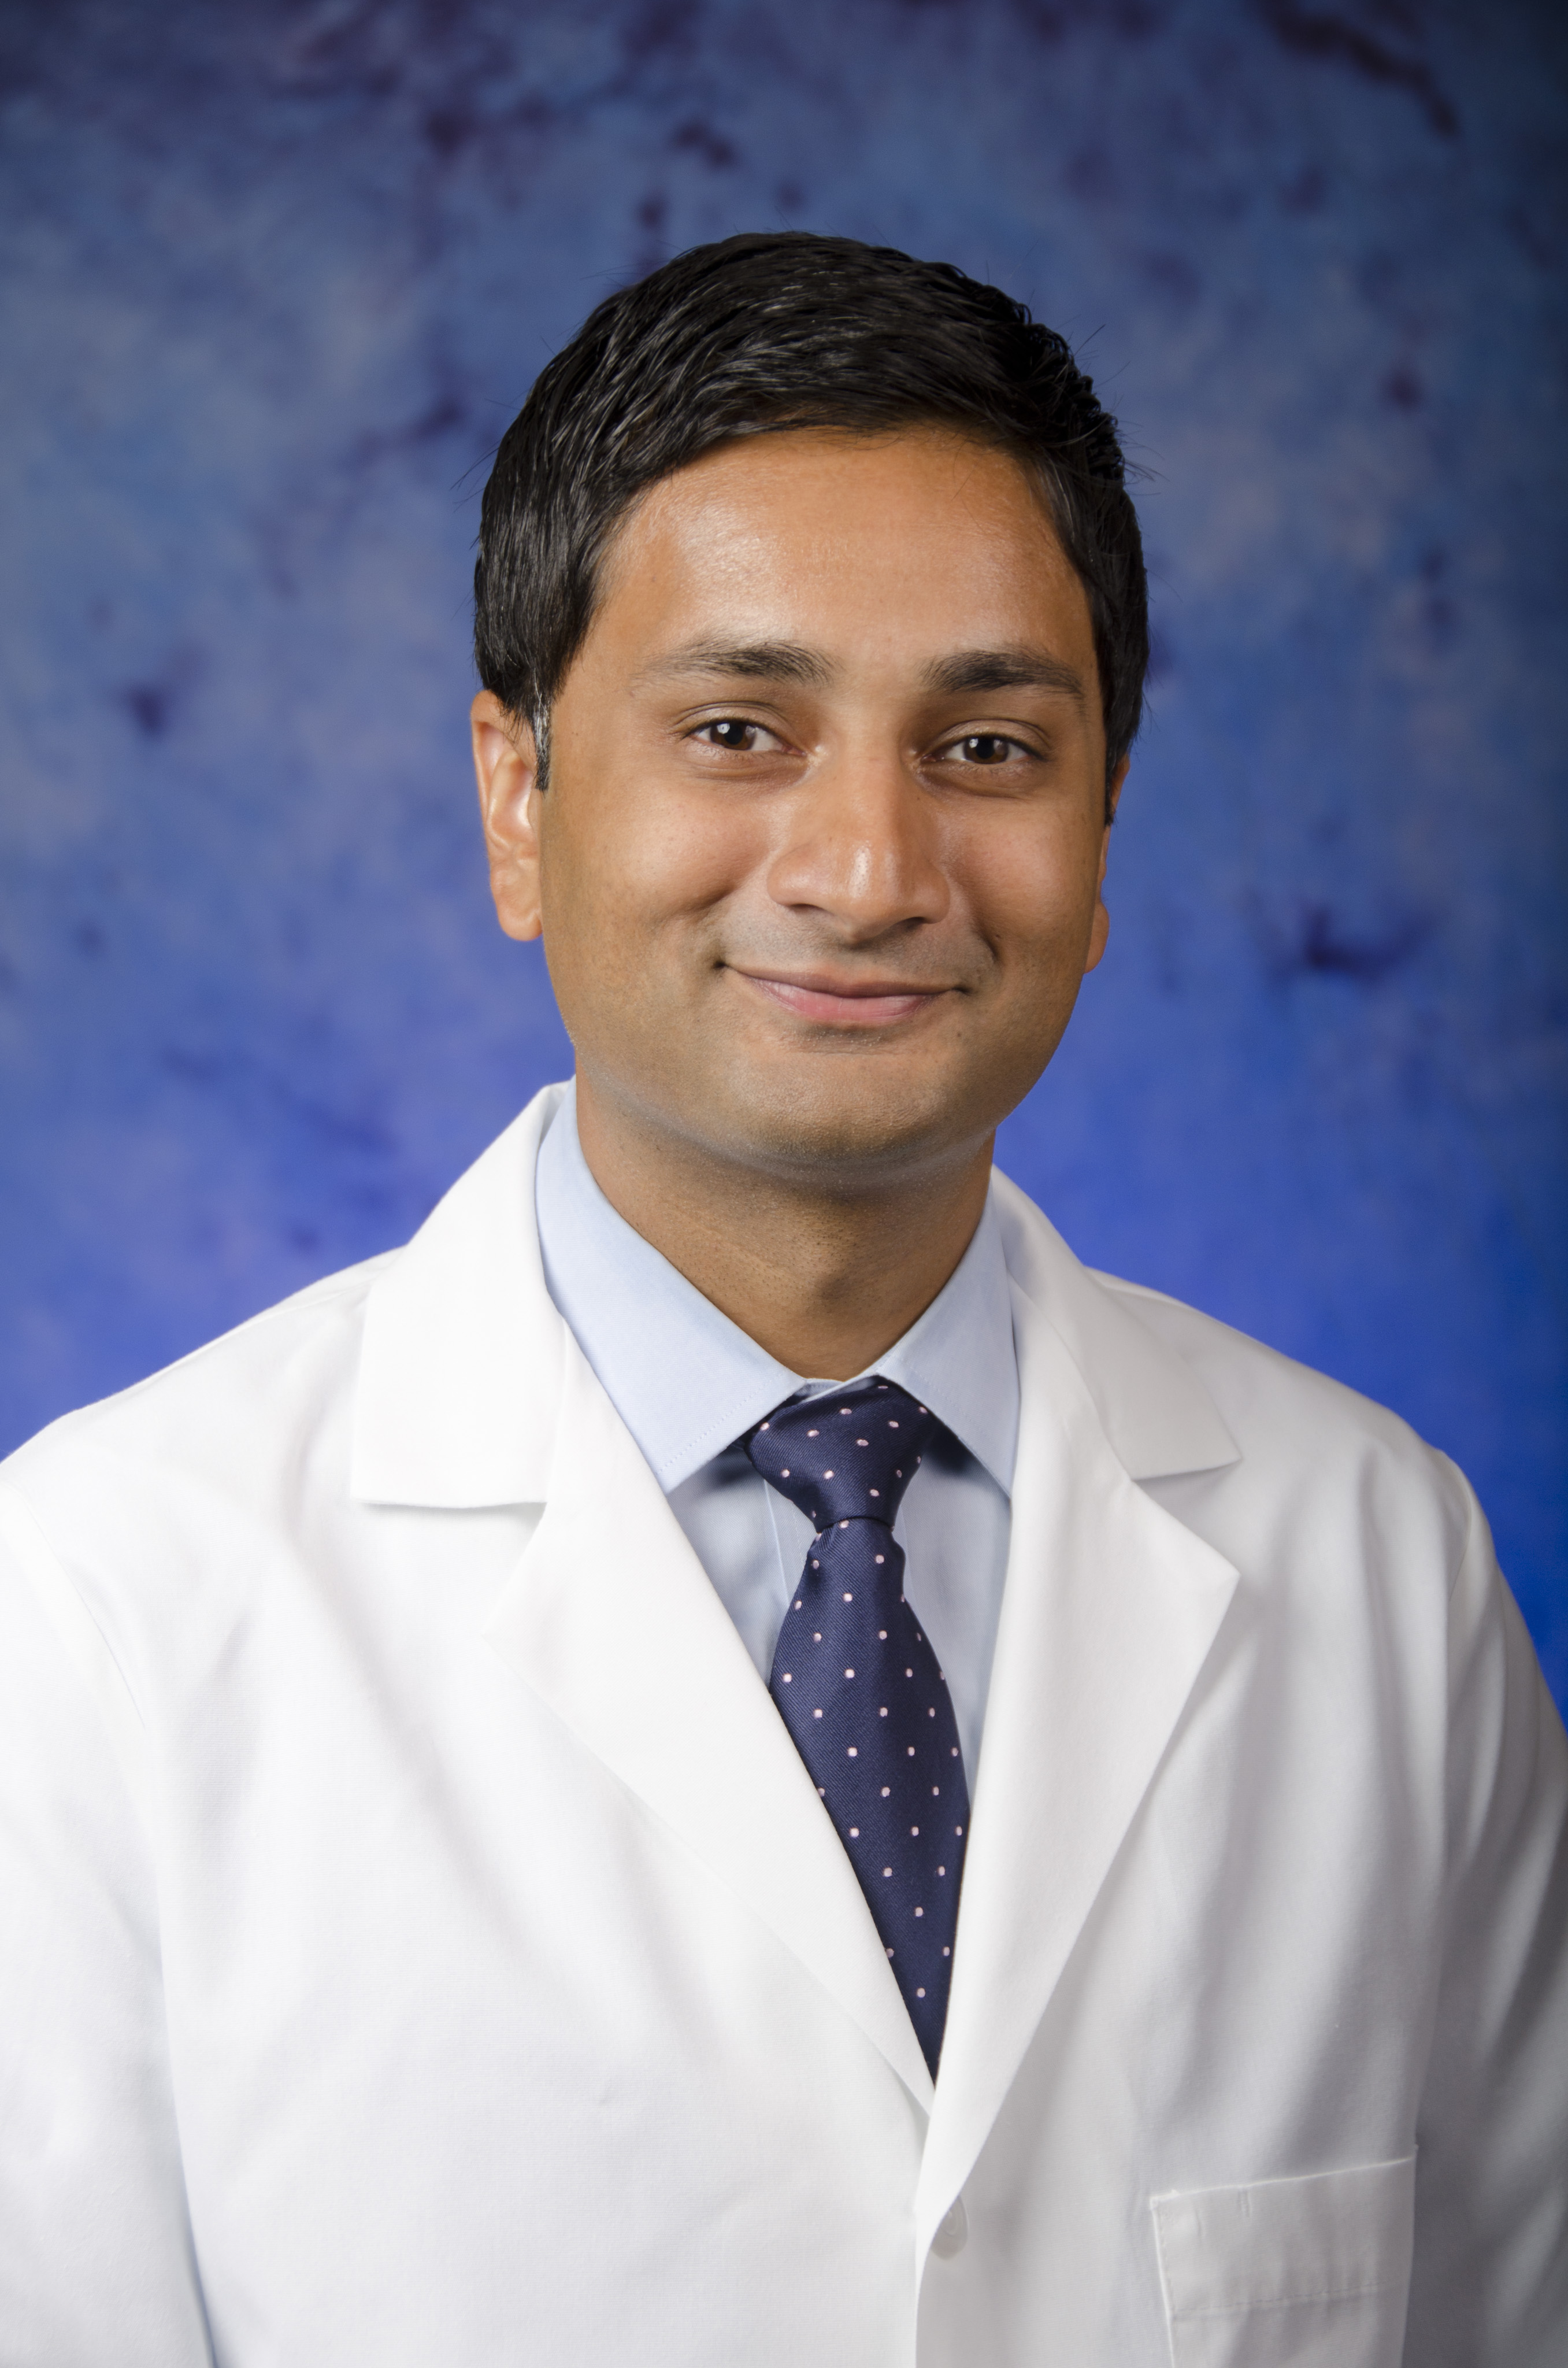 Dr. Ayaz Rahman in white lab coat, and tie.